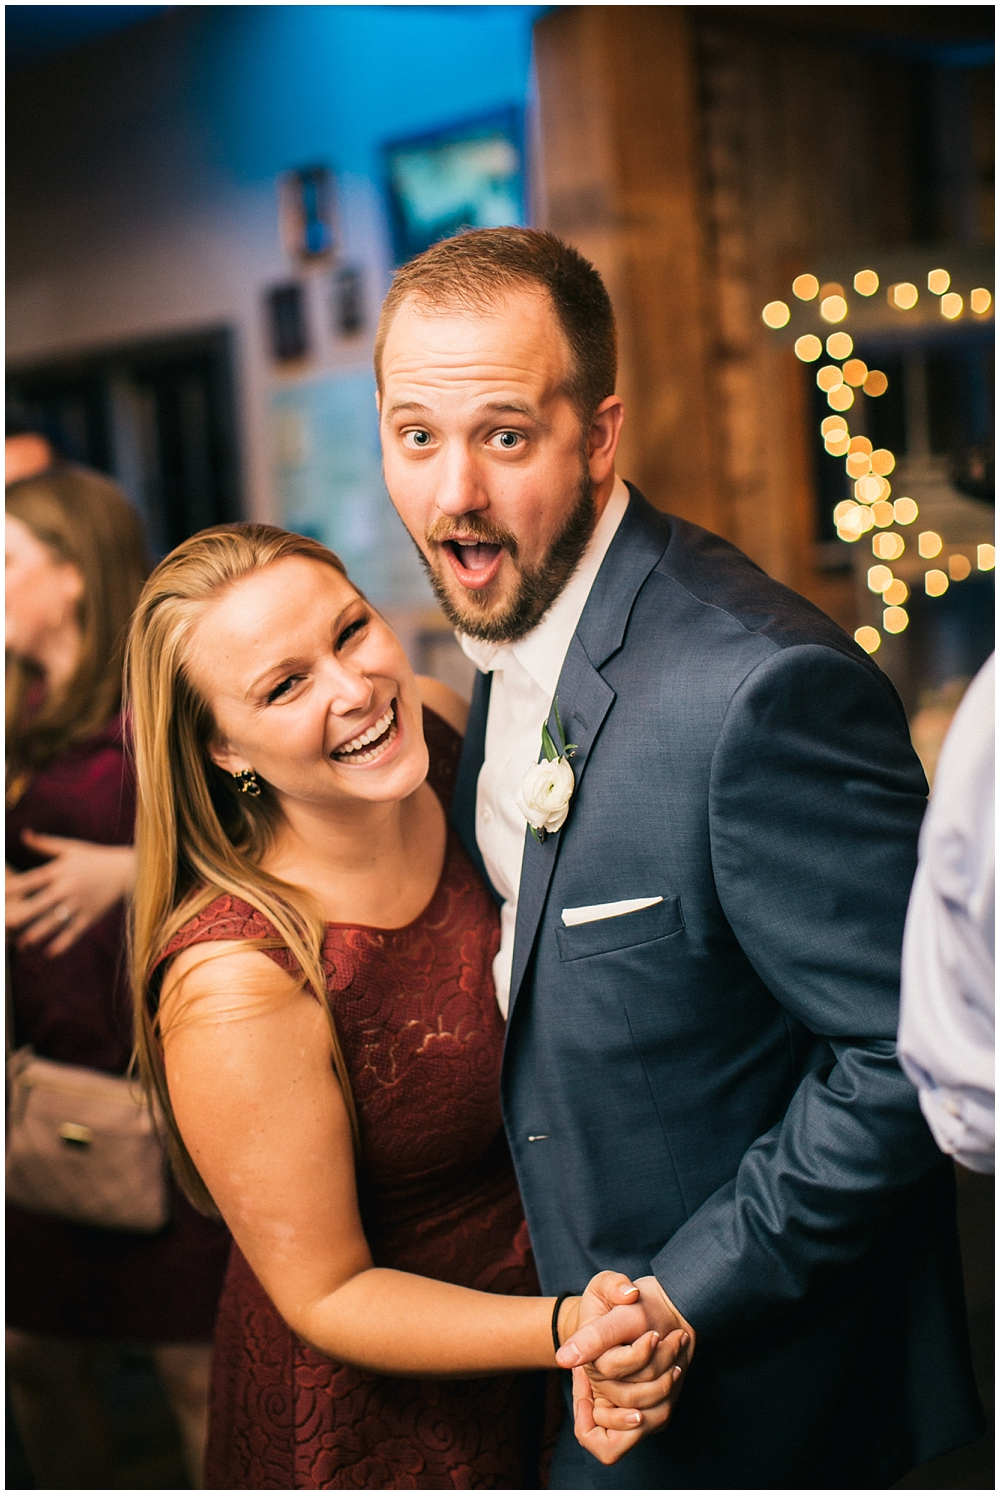 PattengalePhotography_StLouis_Wedding_Photographer_Boho_Hipster_Urban_Style_StCharles_Missouri_BullRunWinery_Charlottesville_Ashley&Sawyer_0164.jpg